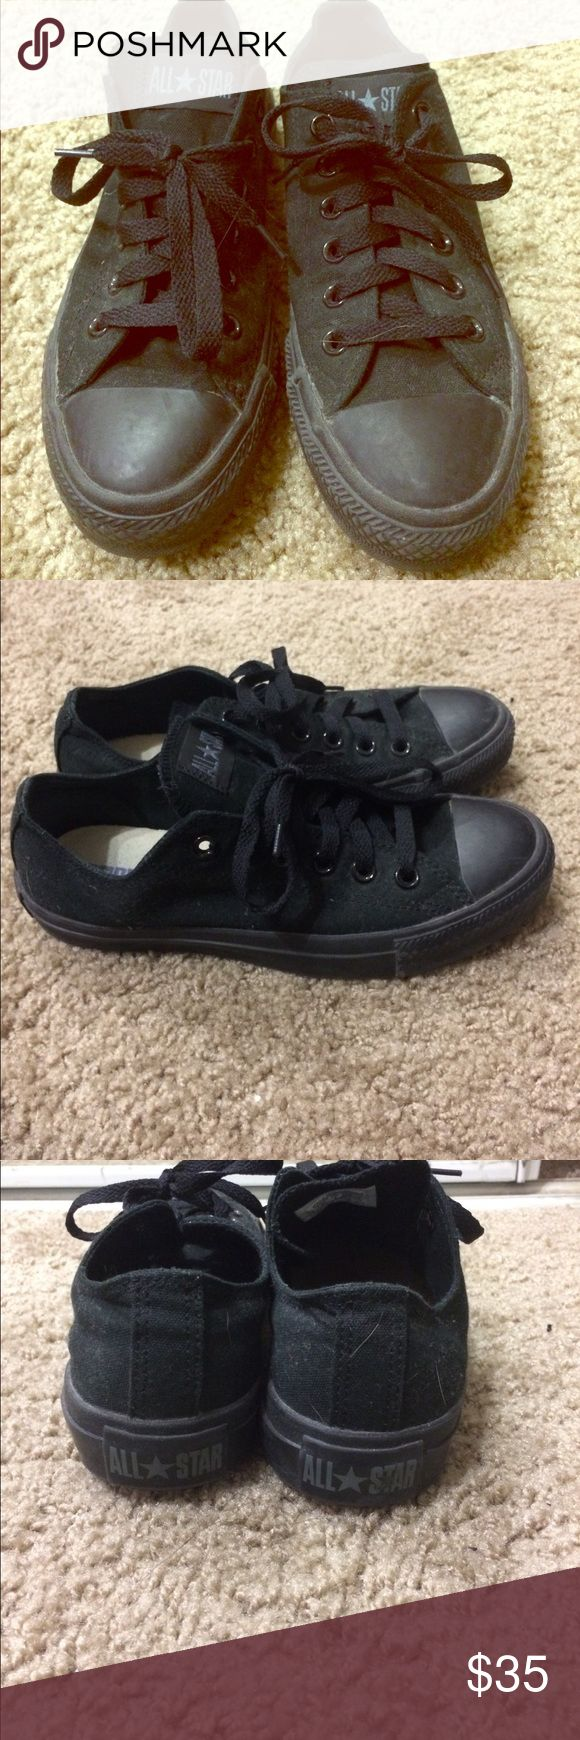 Black converse shoes Been worn a couple times and look brand new. All black converse. Converse Shoes Sneakers